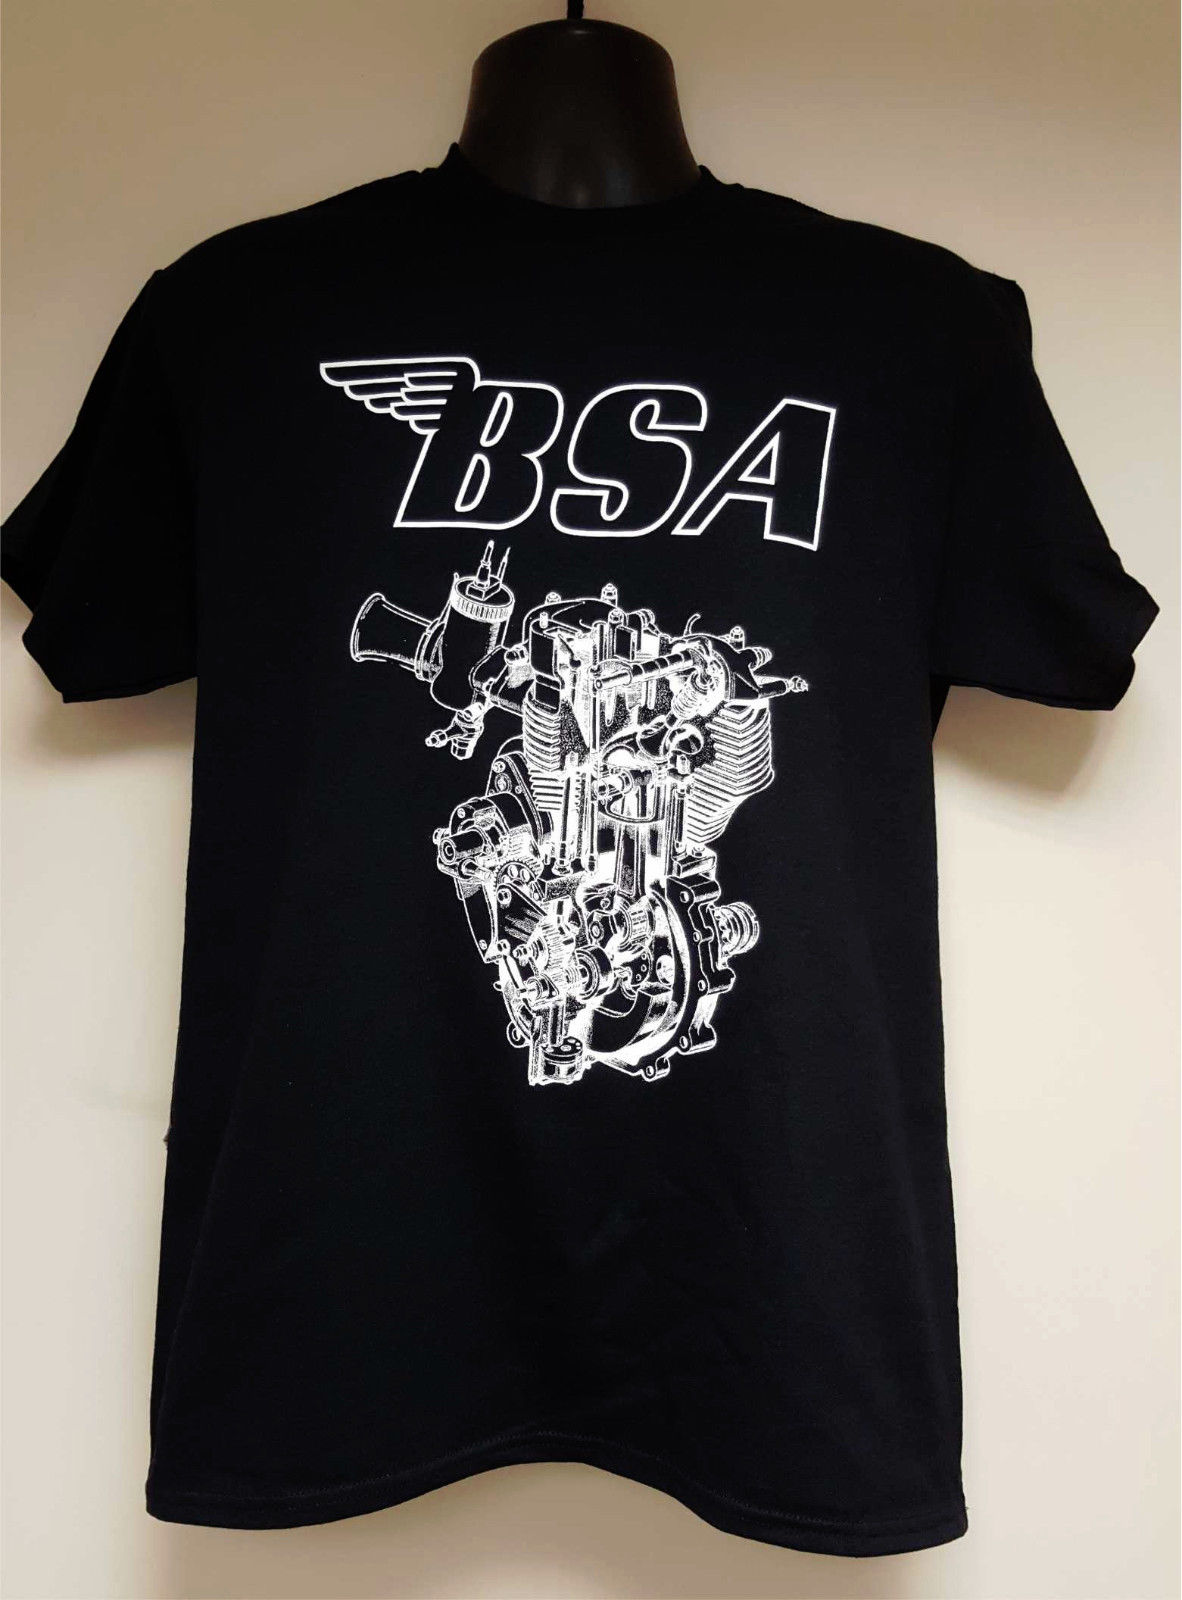 MEN'S OFFICIAL LICENSED MOTORBIKE T-<font><b>SHIRT</b></font> -<font><b>BSA</b></font> ENGINE DESIGN Cartoon t <font><b>shirt</b></font> men Unisex New Fashion tshirt Loose Size top ajax image